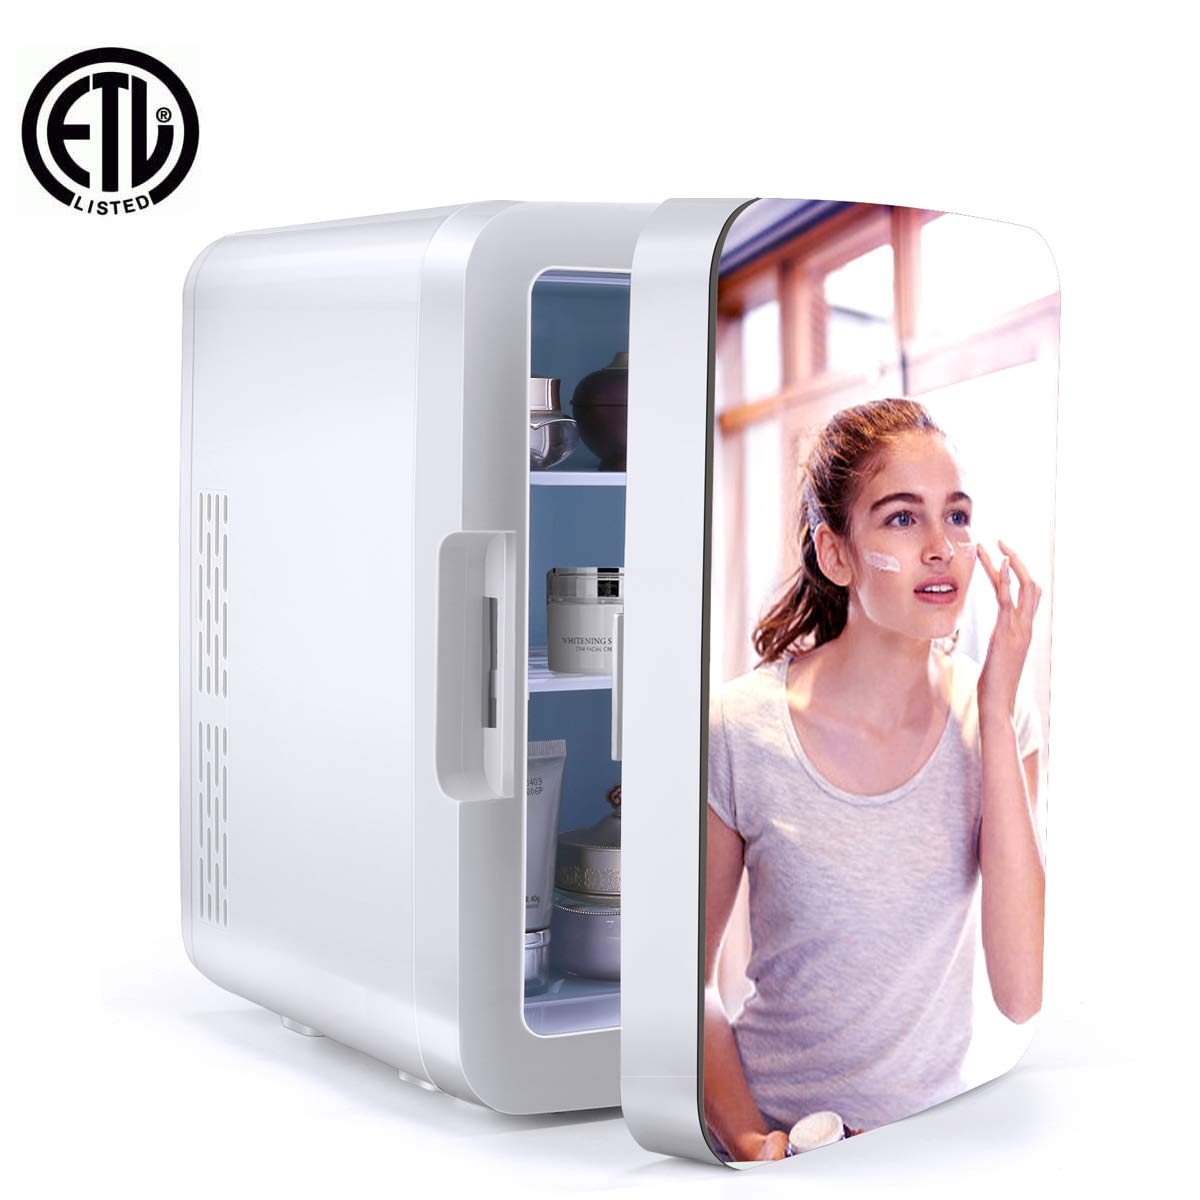 WERSEON Makeup Cosmetics Mirrored Door Mini Fridge Thermoelectric Cooler and Warmer AC/DC Powered System – Compact and Portable for Travel, Car, Skincare or Medical Use (White)